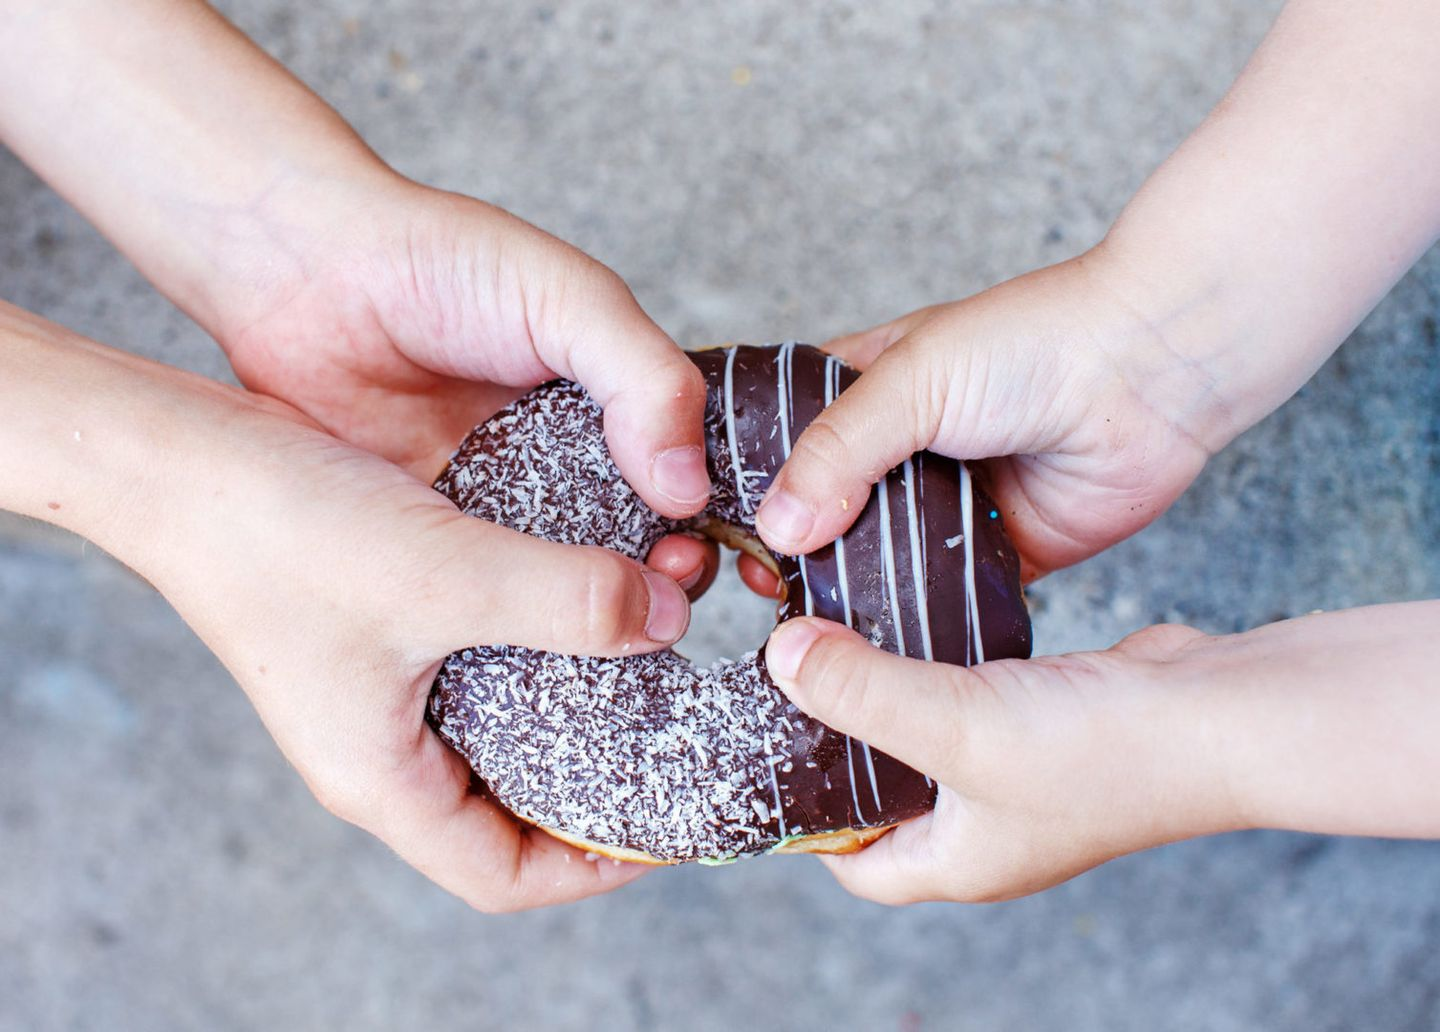 Childrens hands holding a chocolate donut two kids pull to themselves donut closeup the concept of sharing food